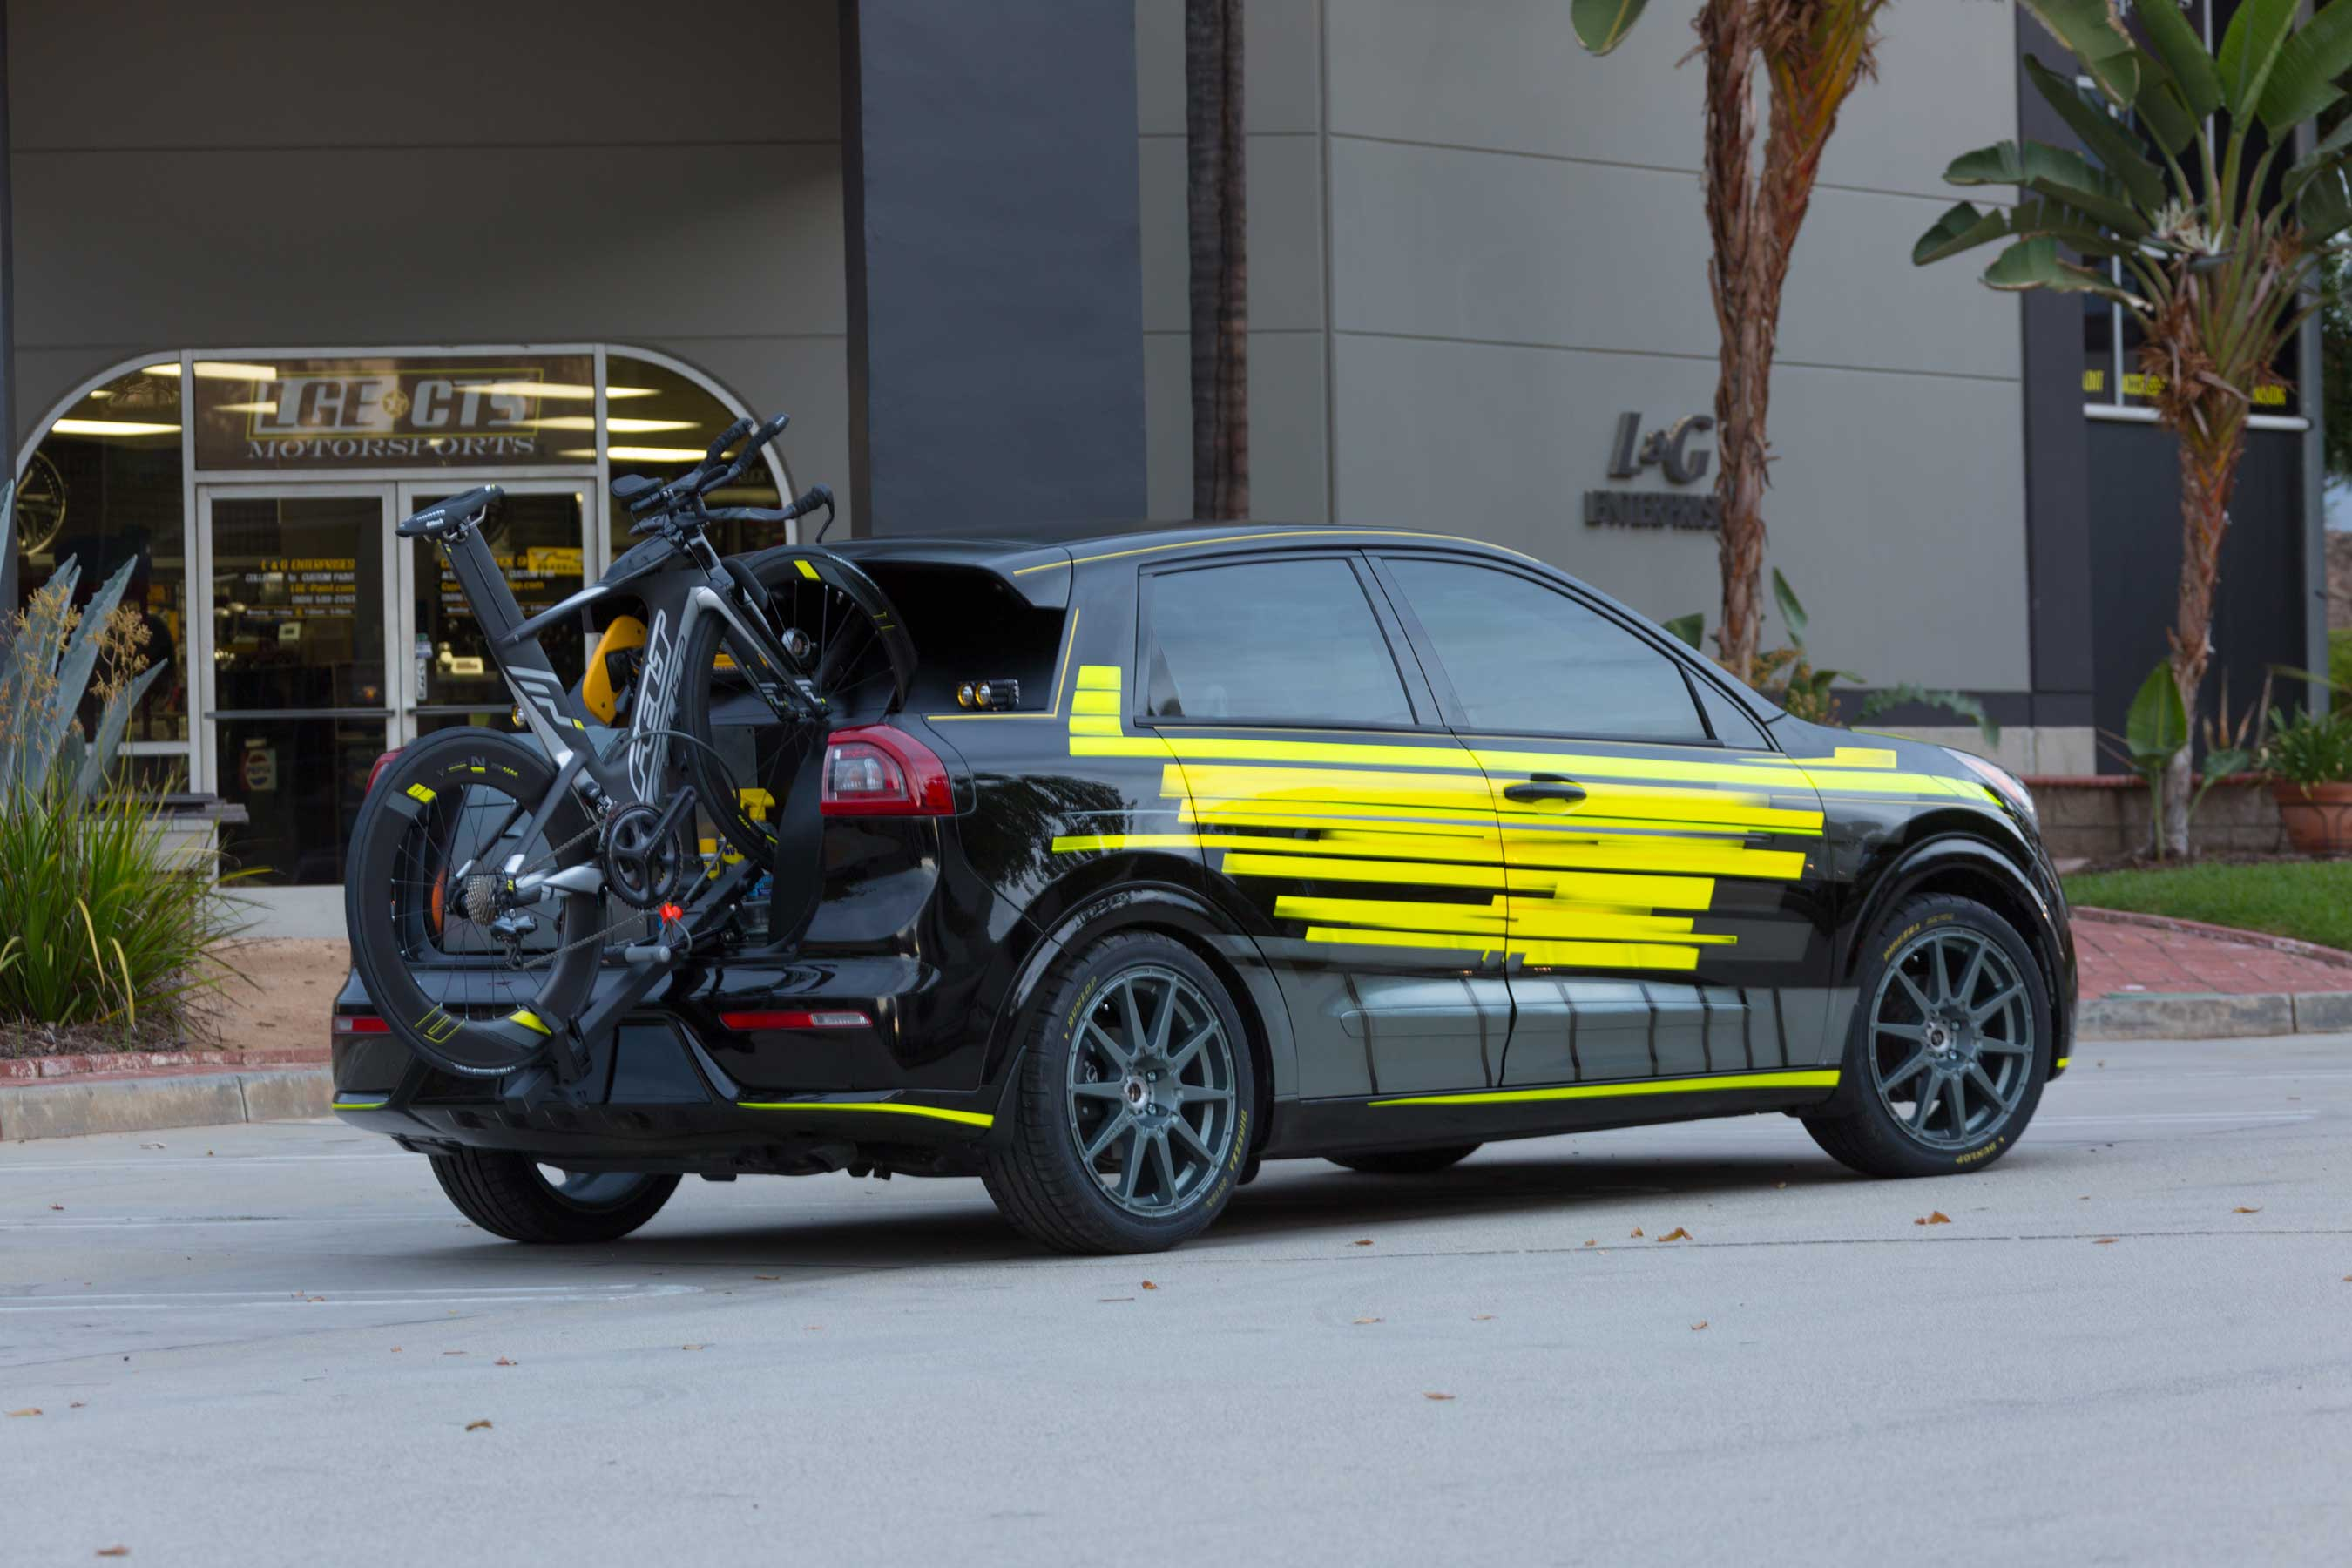 Kia's autonomous Niro Triathlon offers athletes refuge in a cabin designed for recharging and recovery while also providing top-notch training and safety equipment